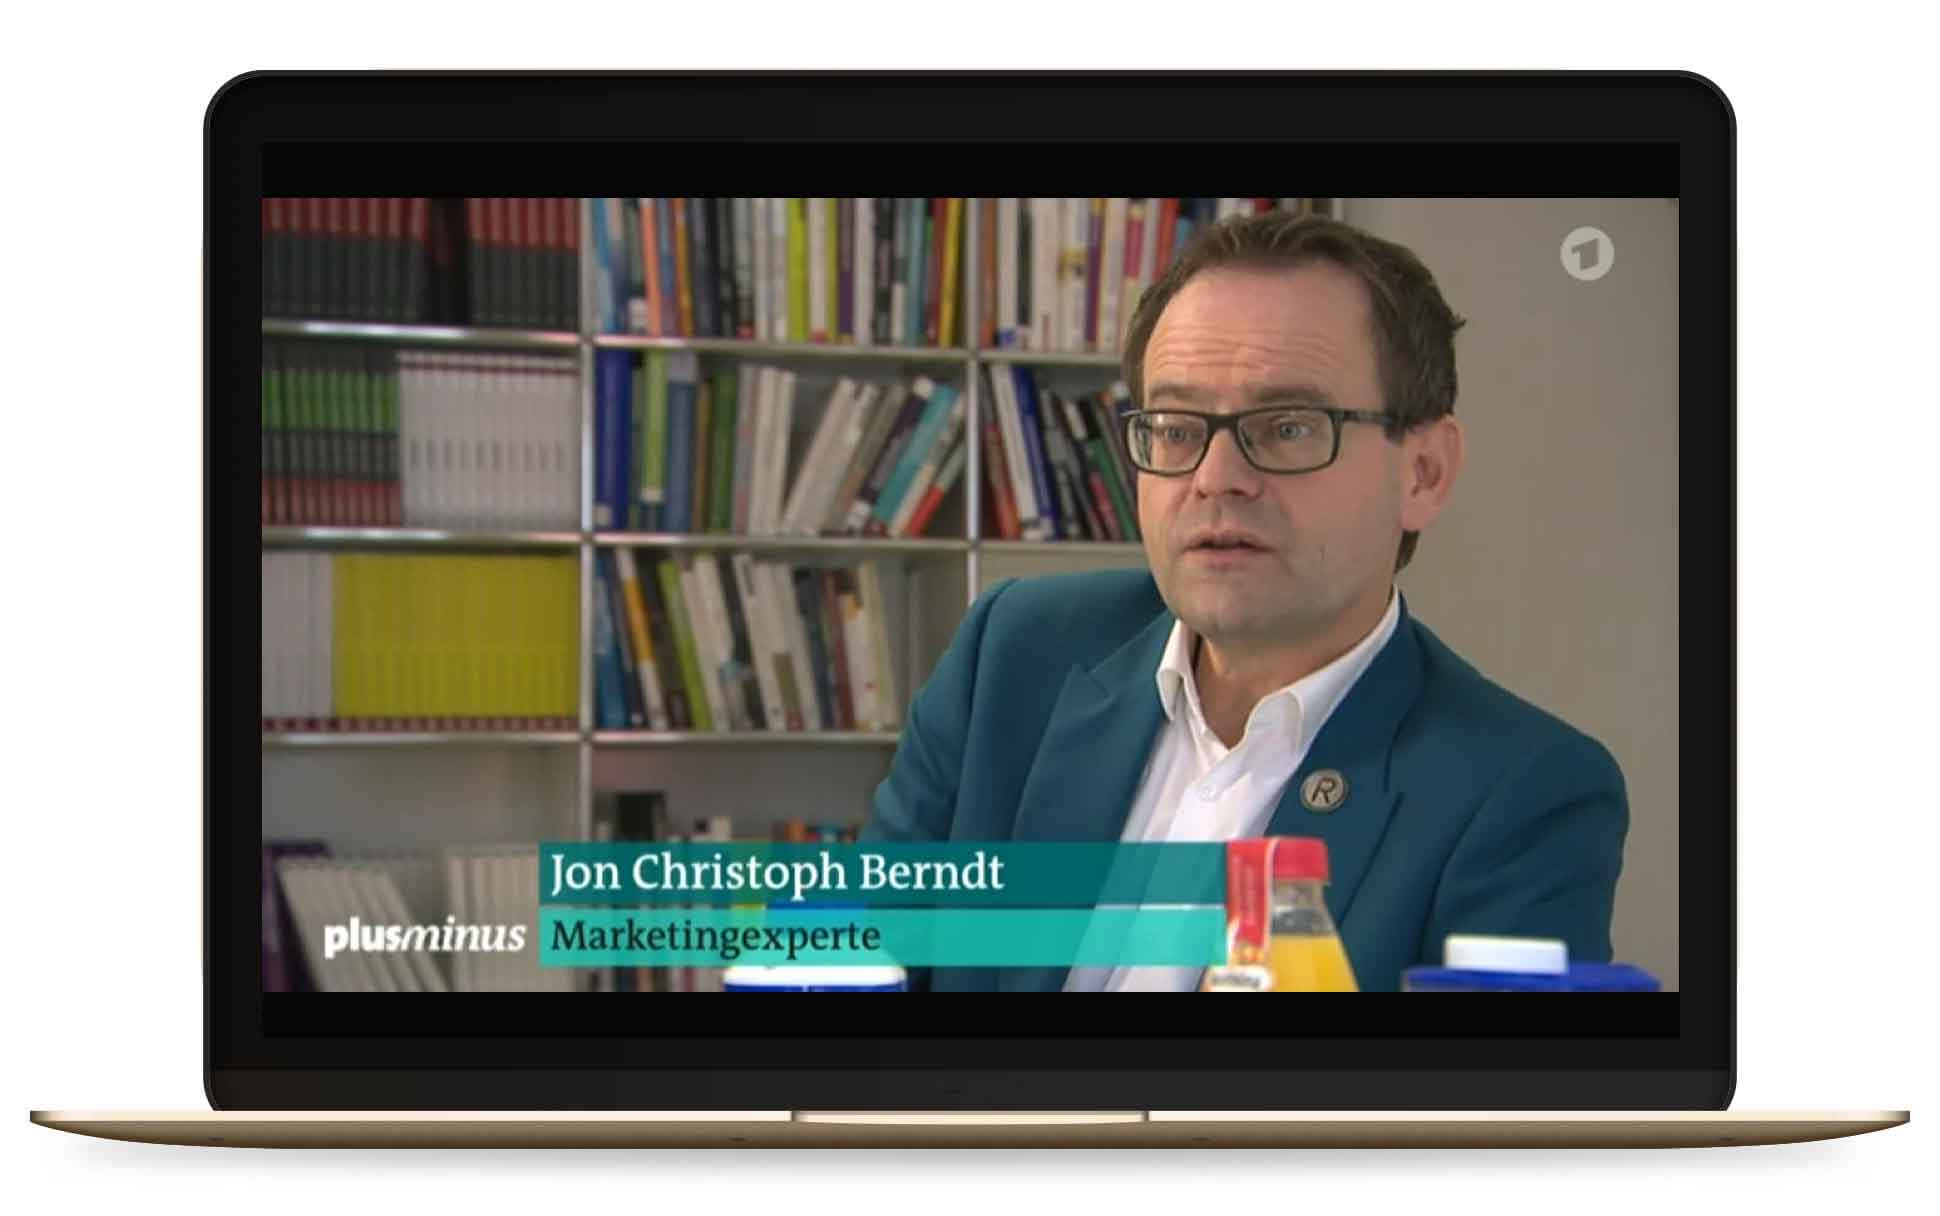 Jon Christoph Berndt in the Media